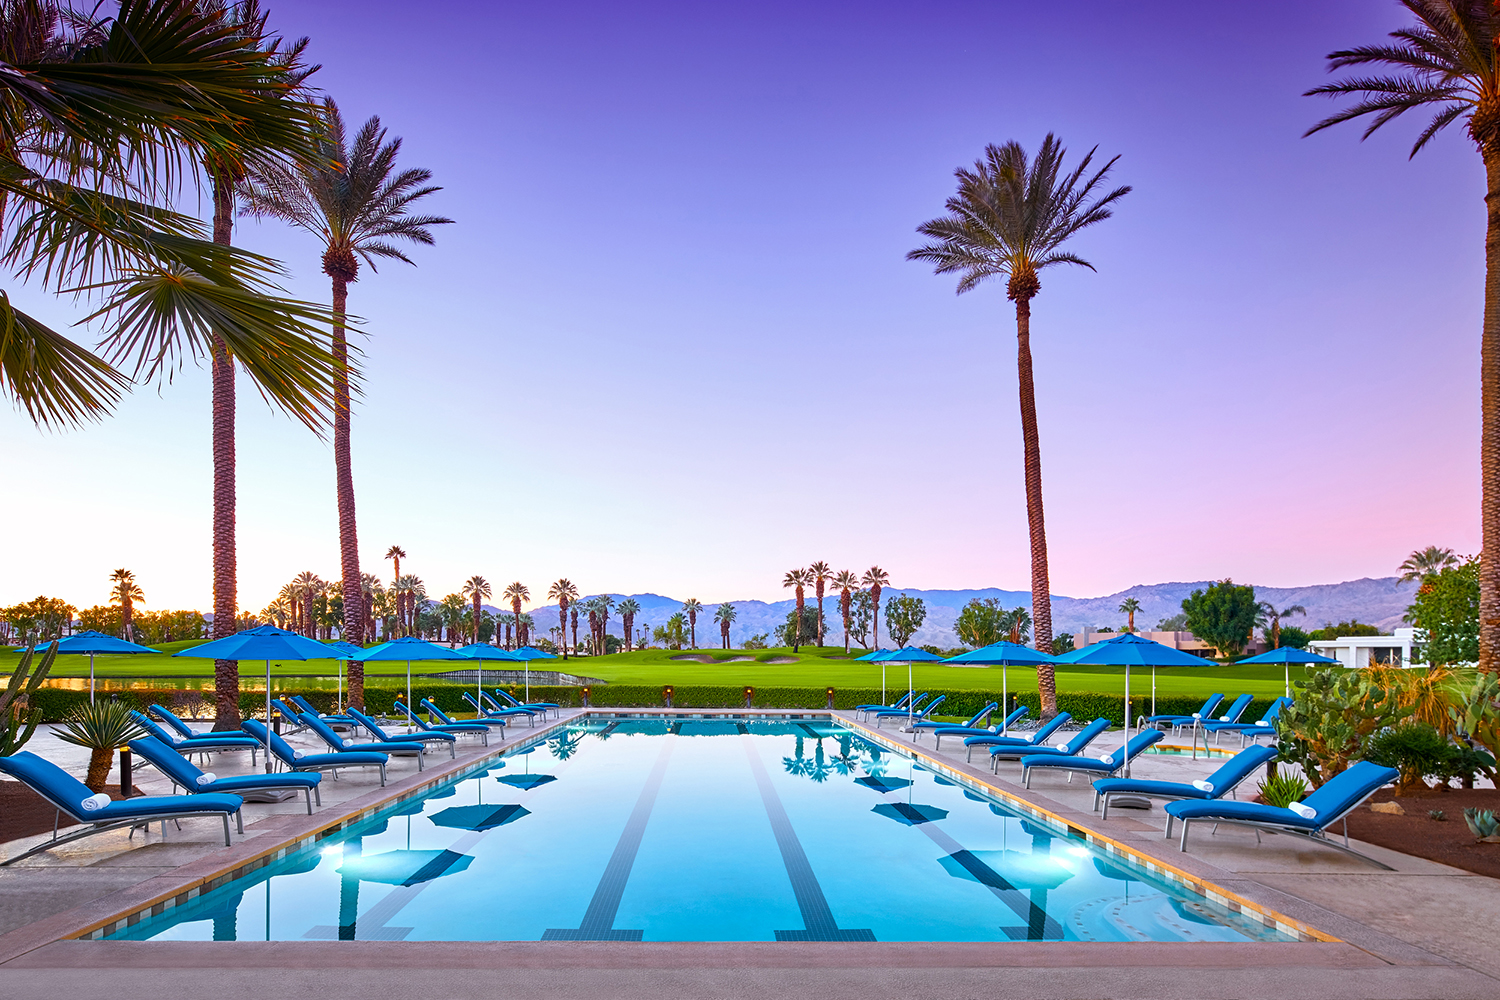 Enjoy a beautiful desert sunset while lying out by the resort's stunning pool.